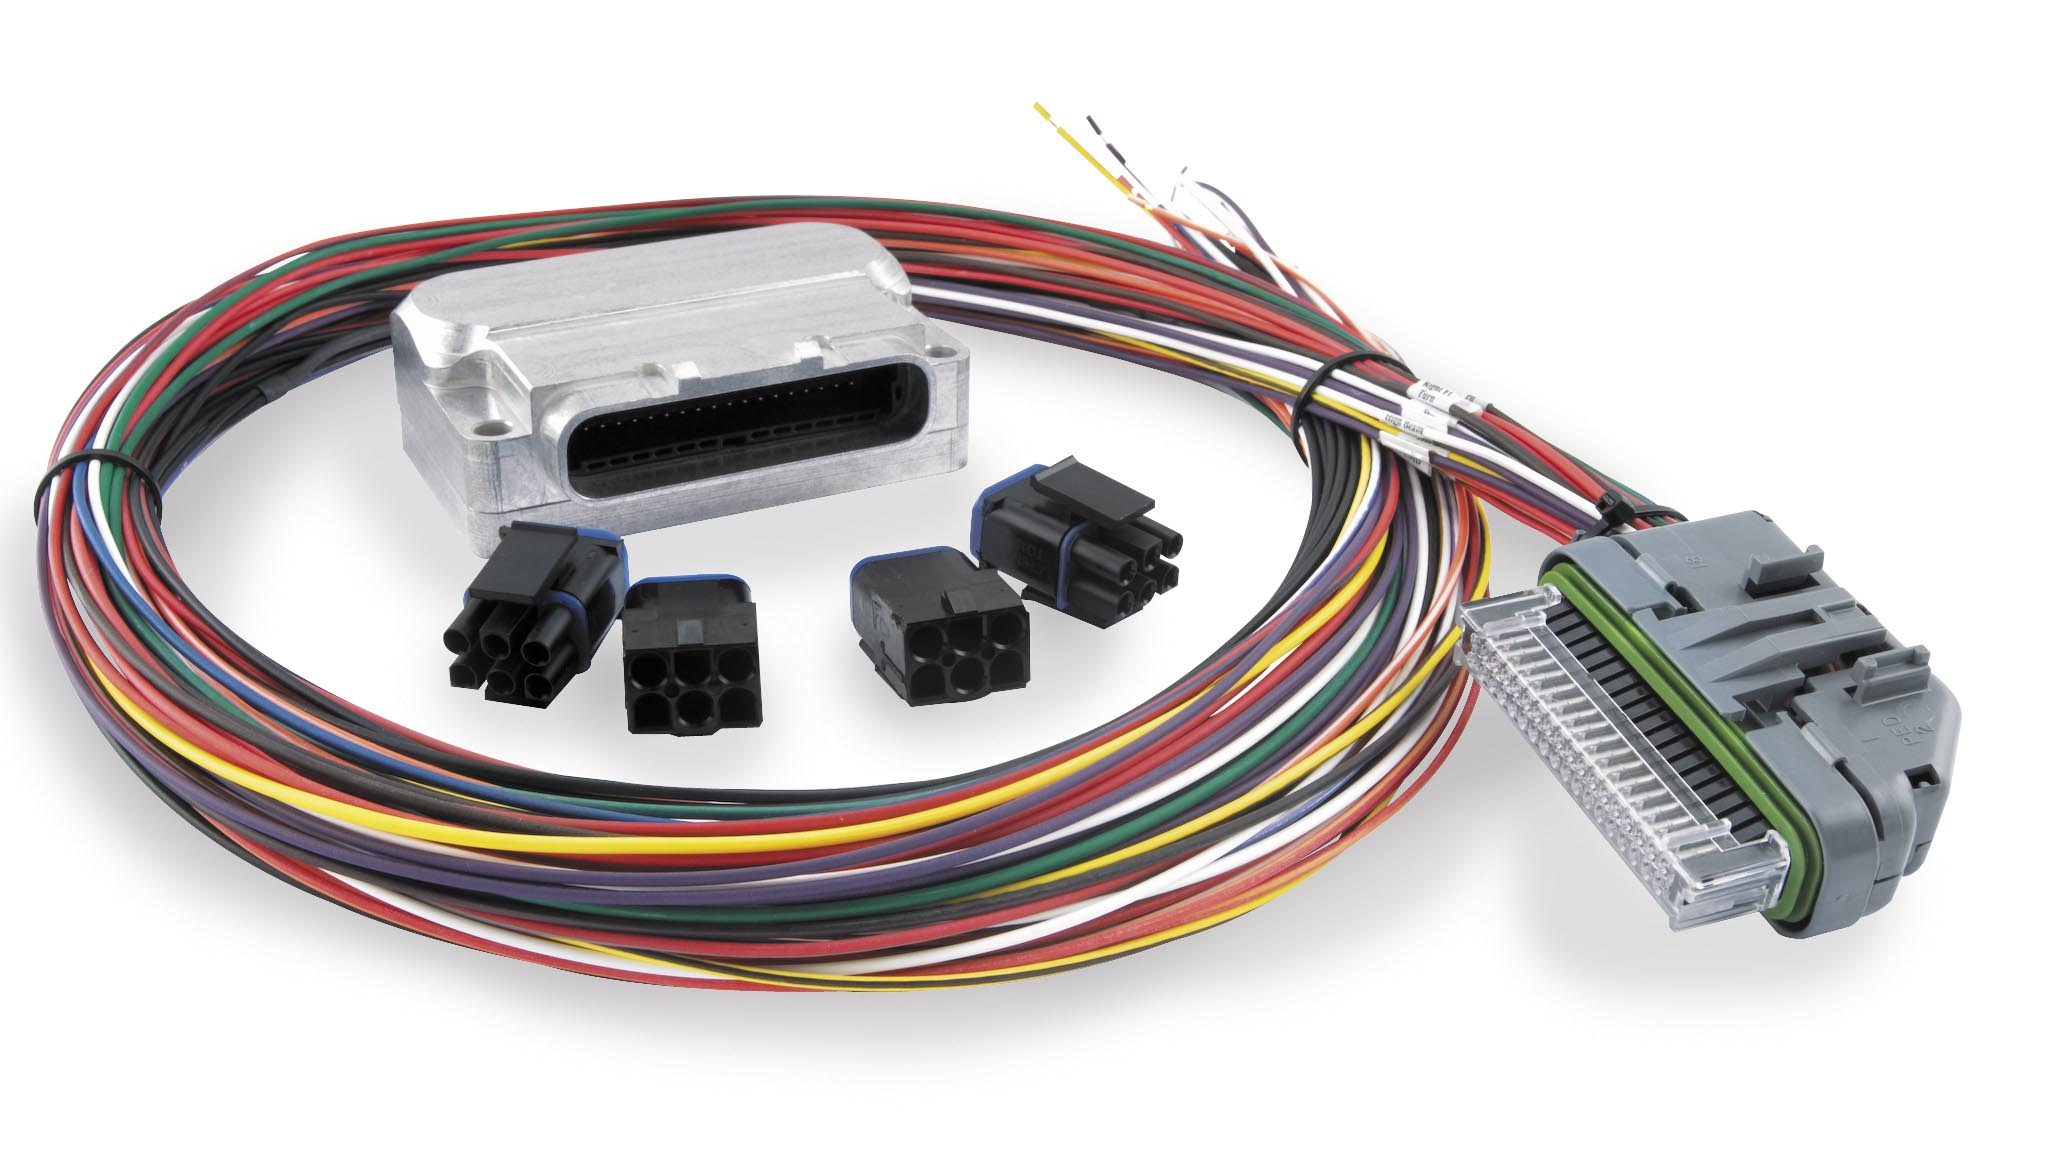 Thunderheart Motorcycle Electrical Wiring Harness Free Silverado Ebay Thunder Heart Performance Ea4360 Micro Controller Rh Com Harley Davidson Softail Diagram